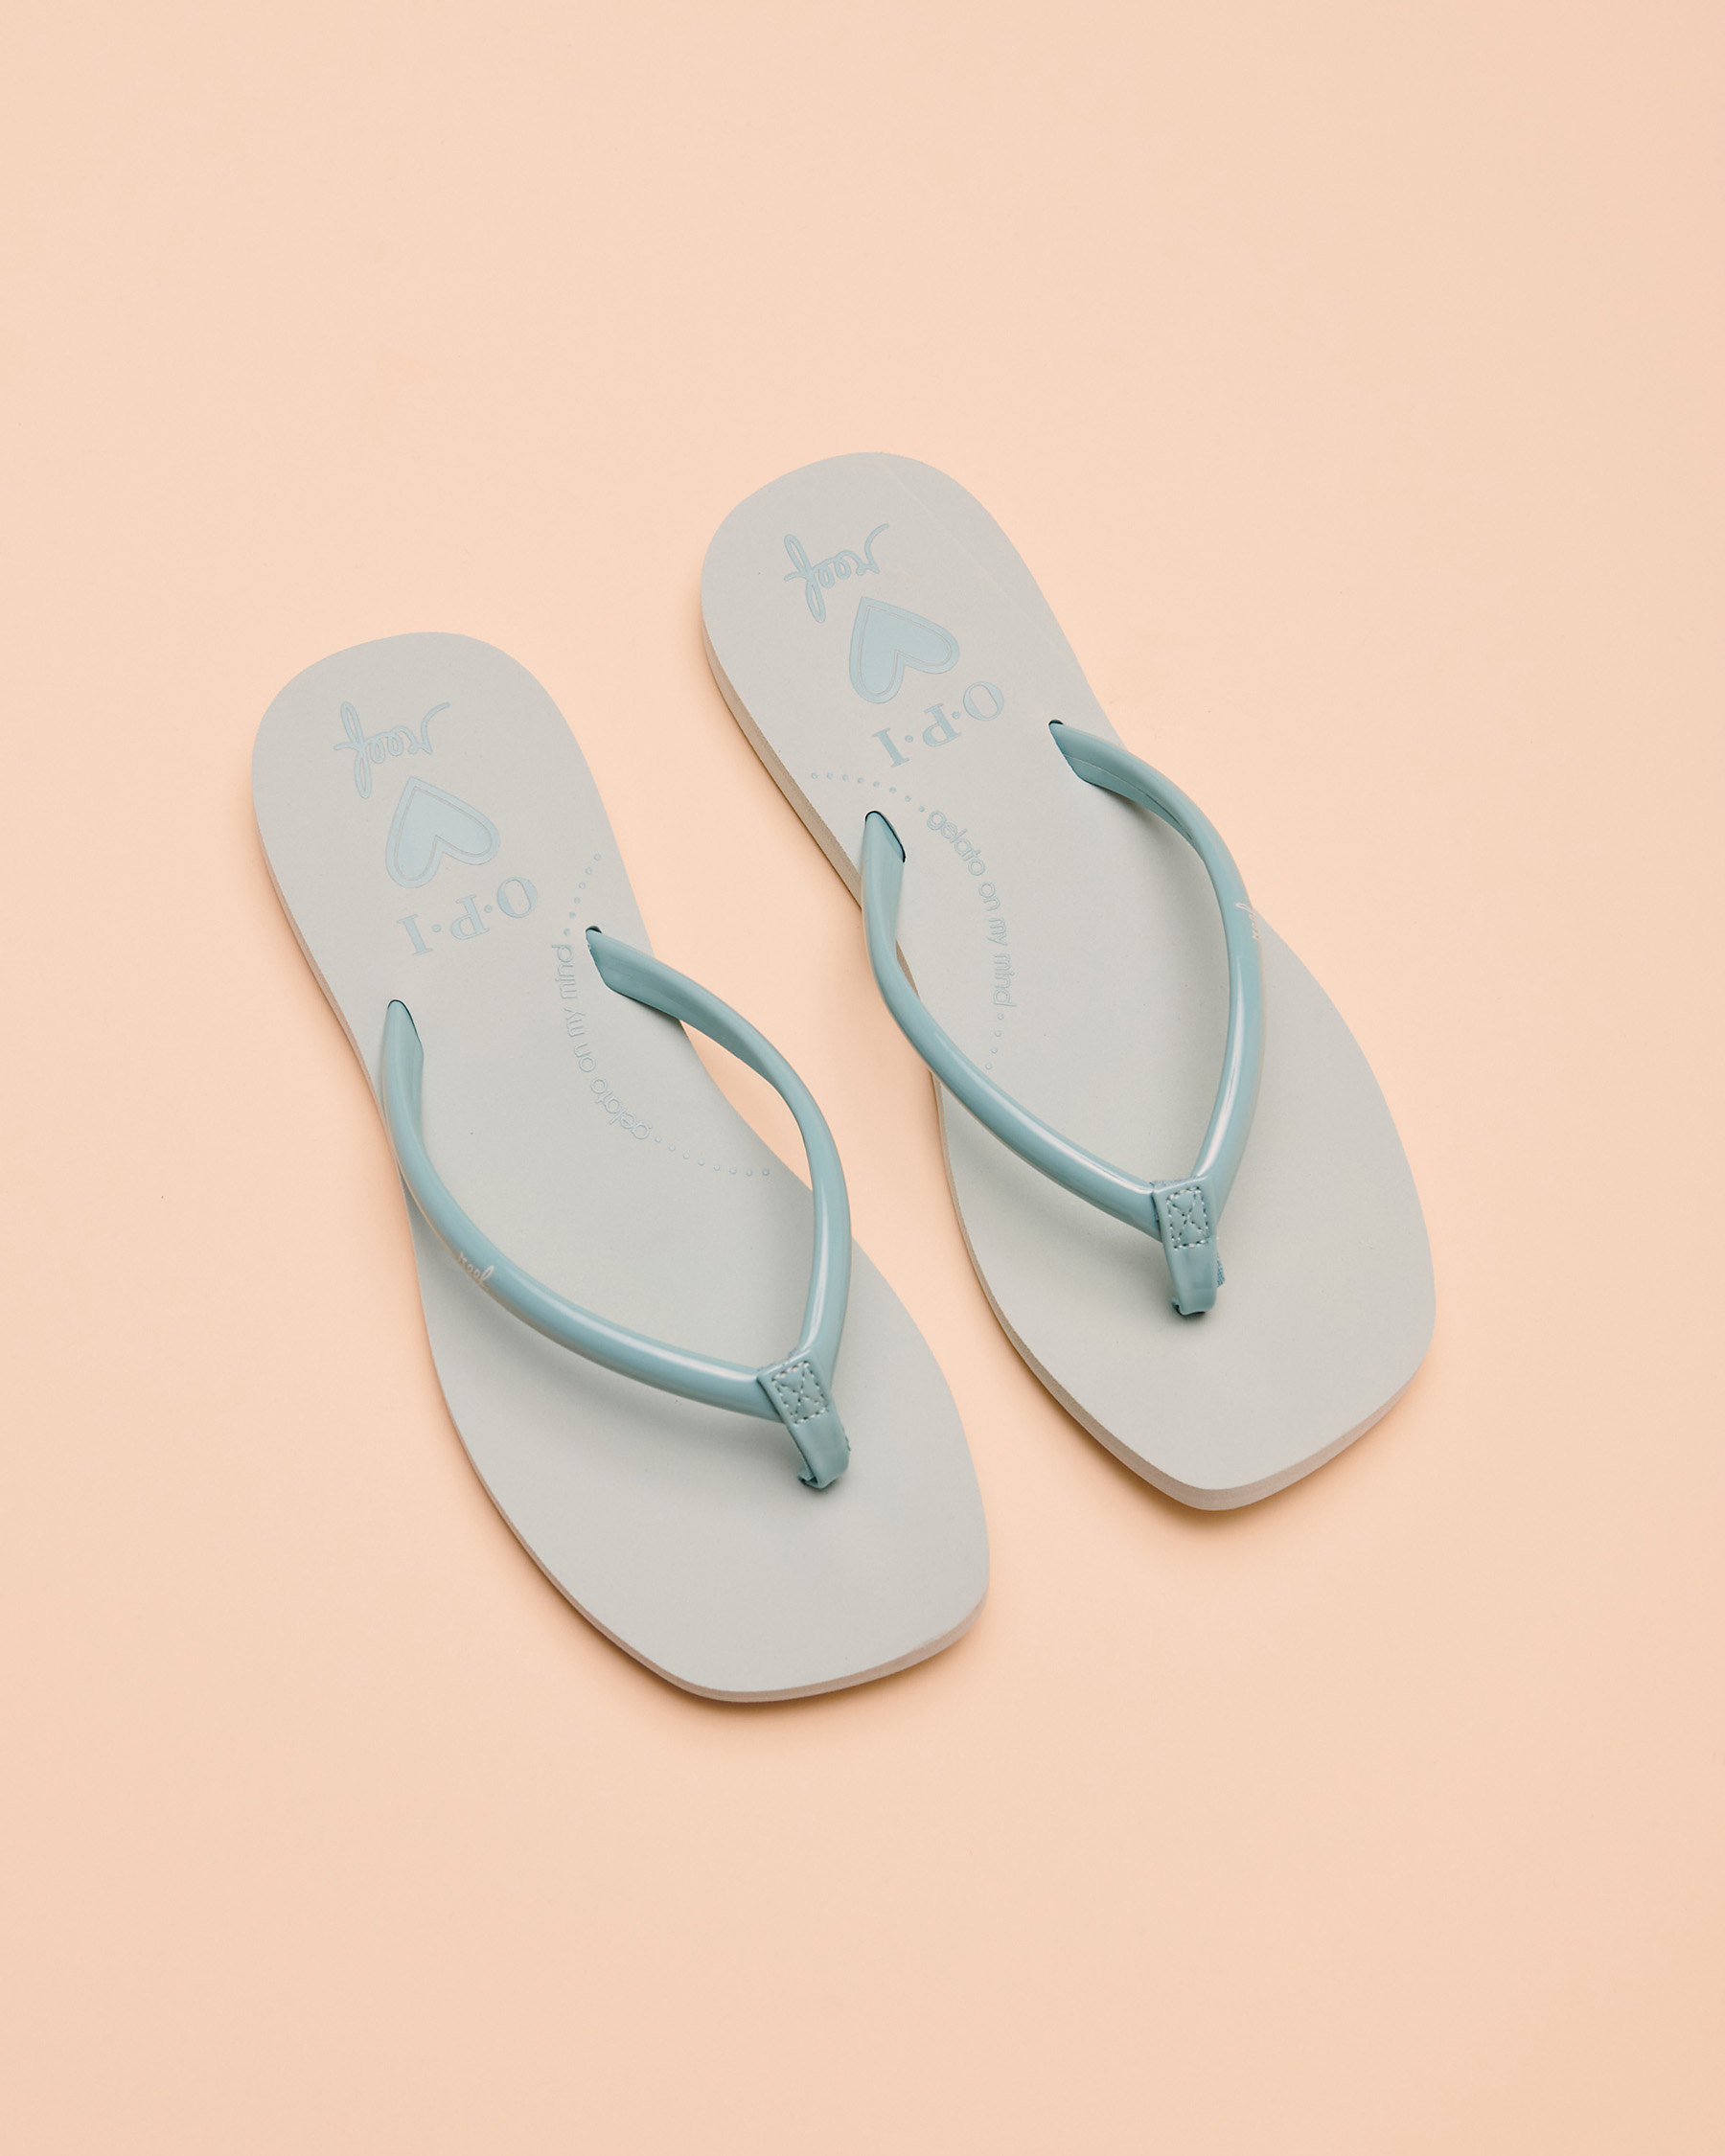 REEF SEAS X OPI Sandals Baby blue CI4873 - View4